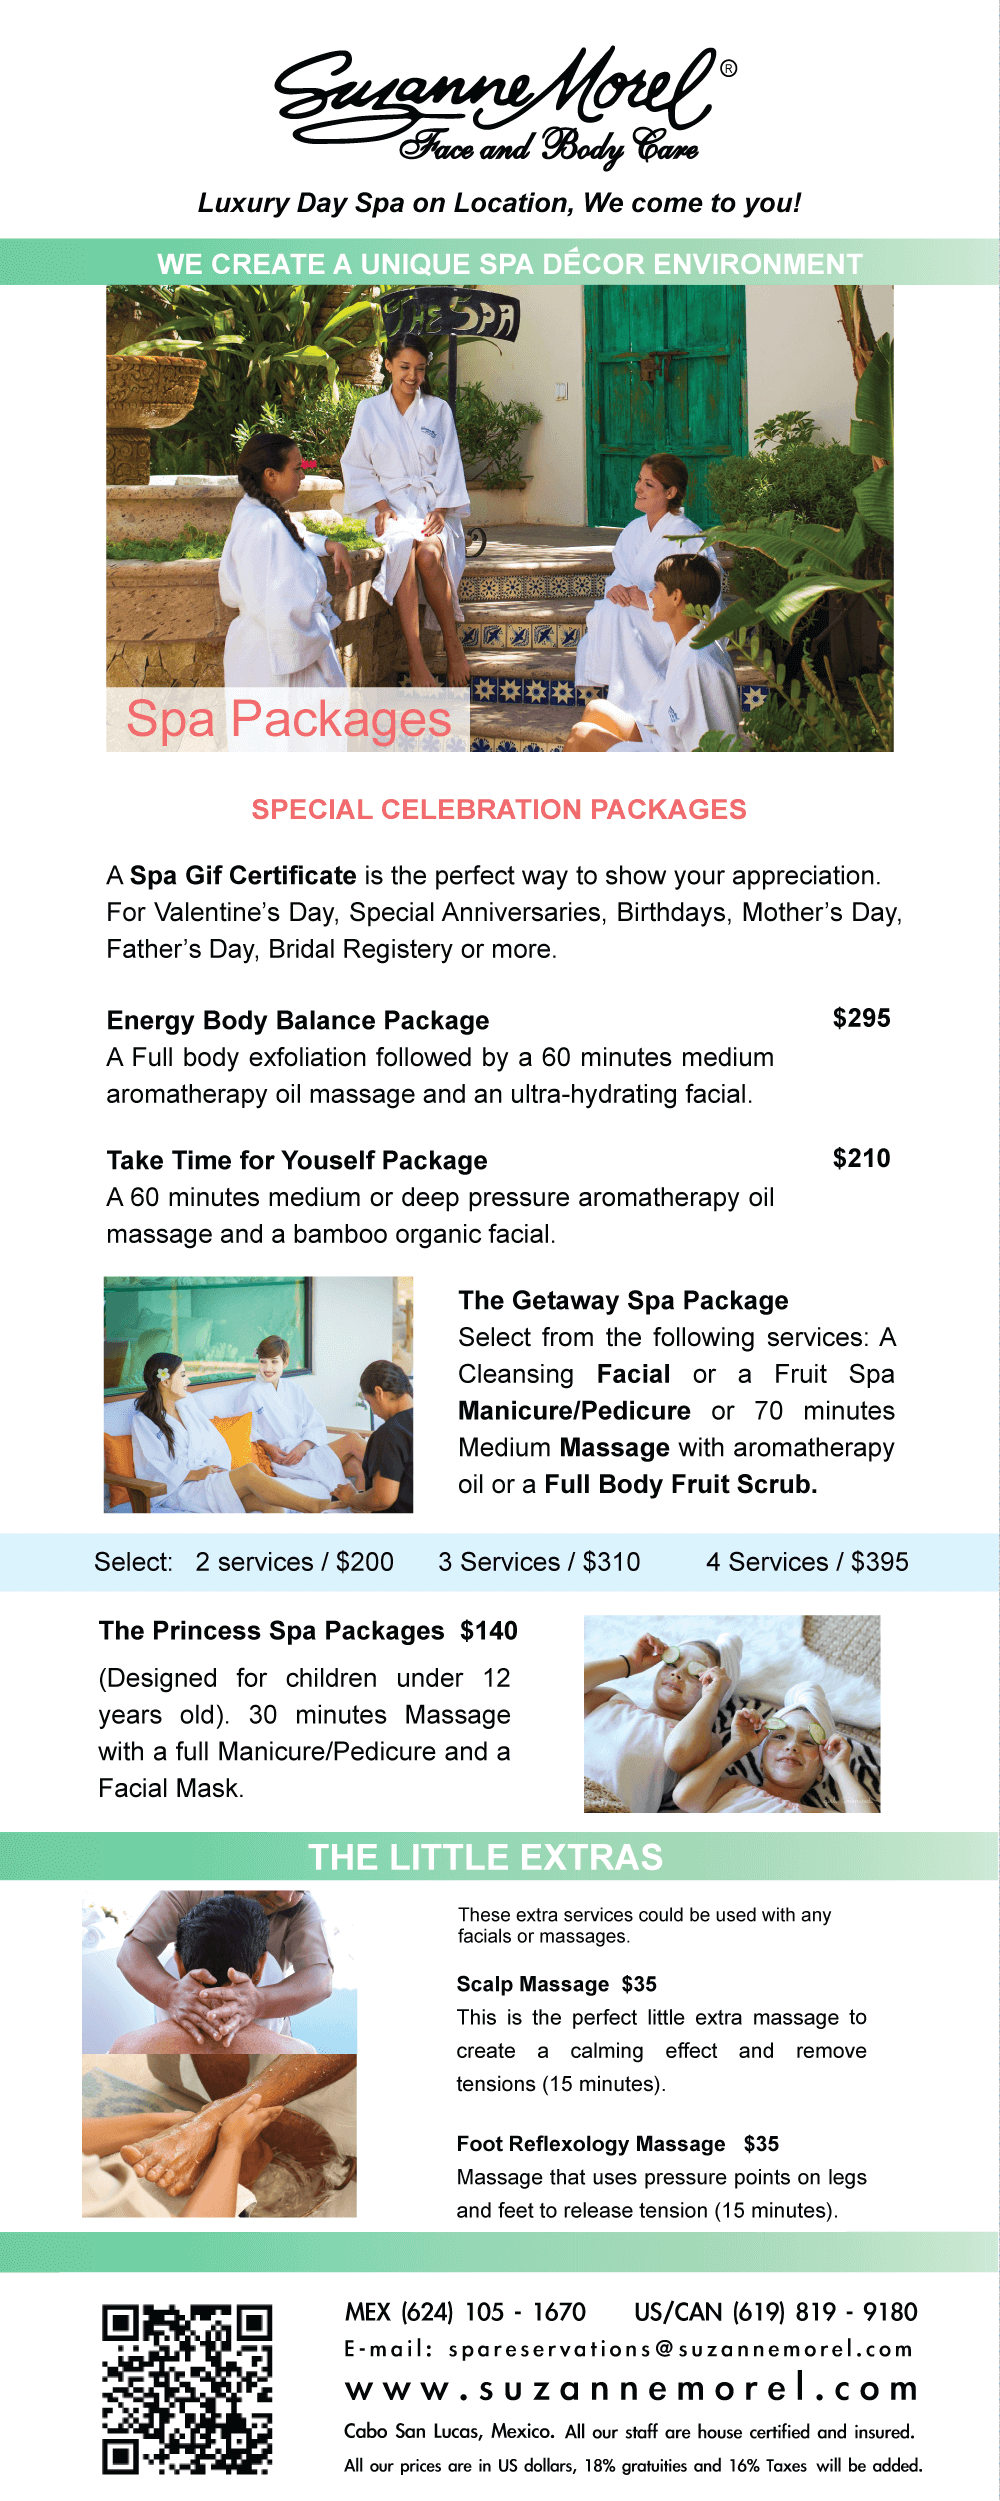 Suzanne morel face and body care suzanne morel for Weekend girl getaways spa packages